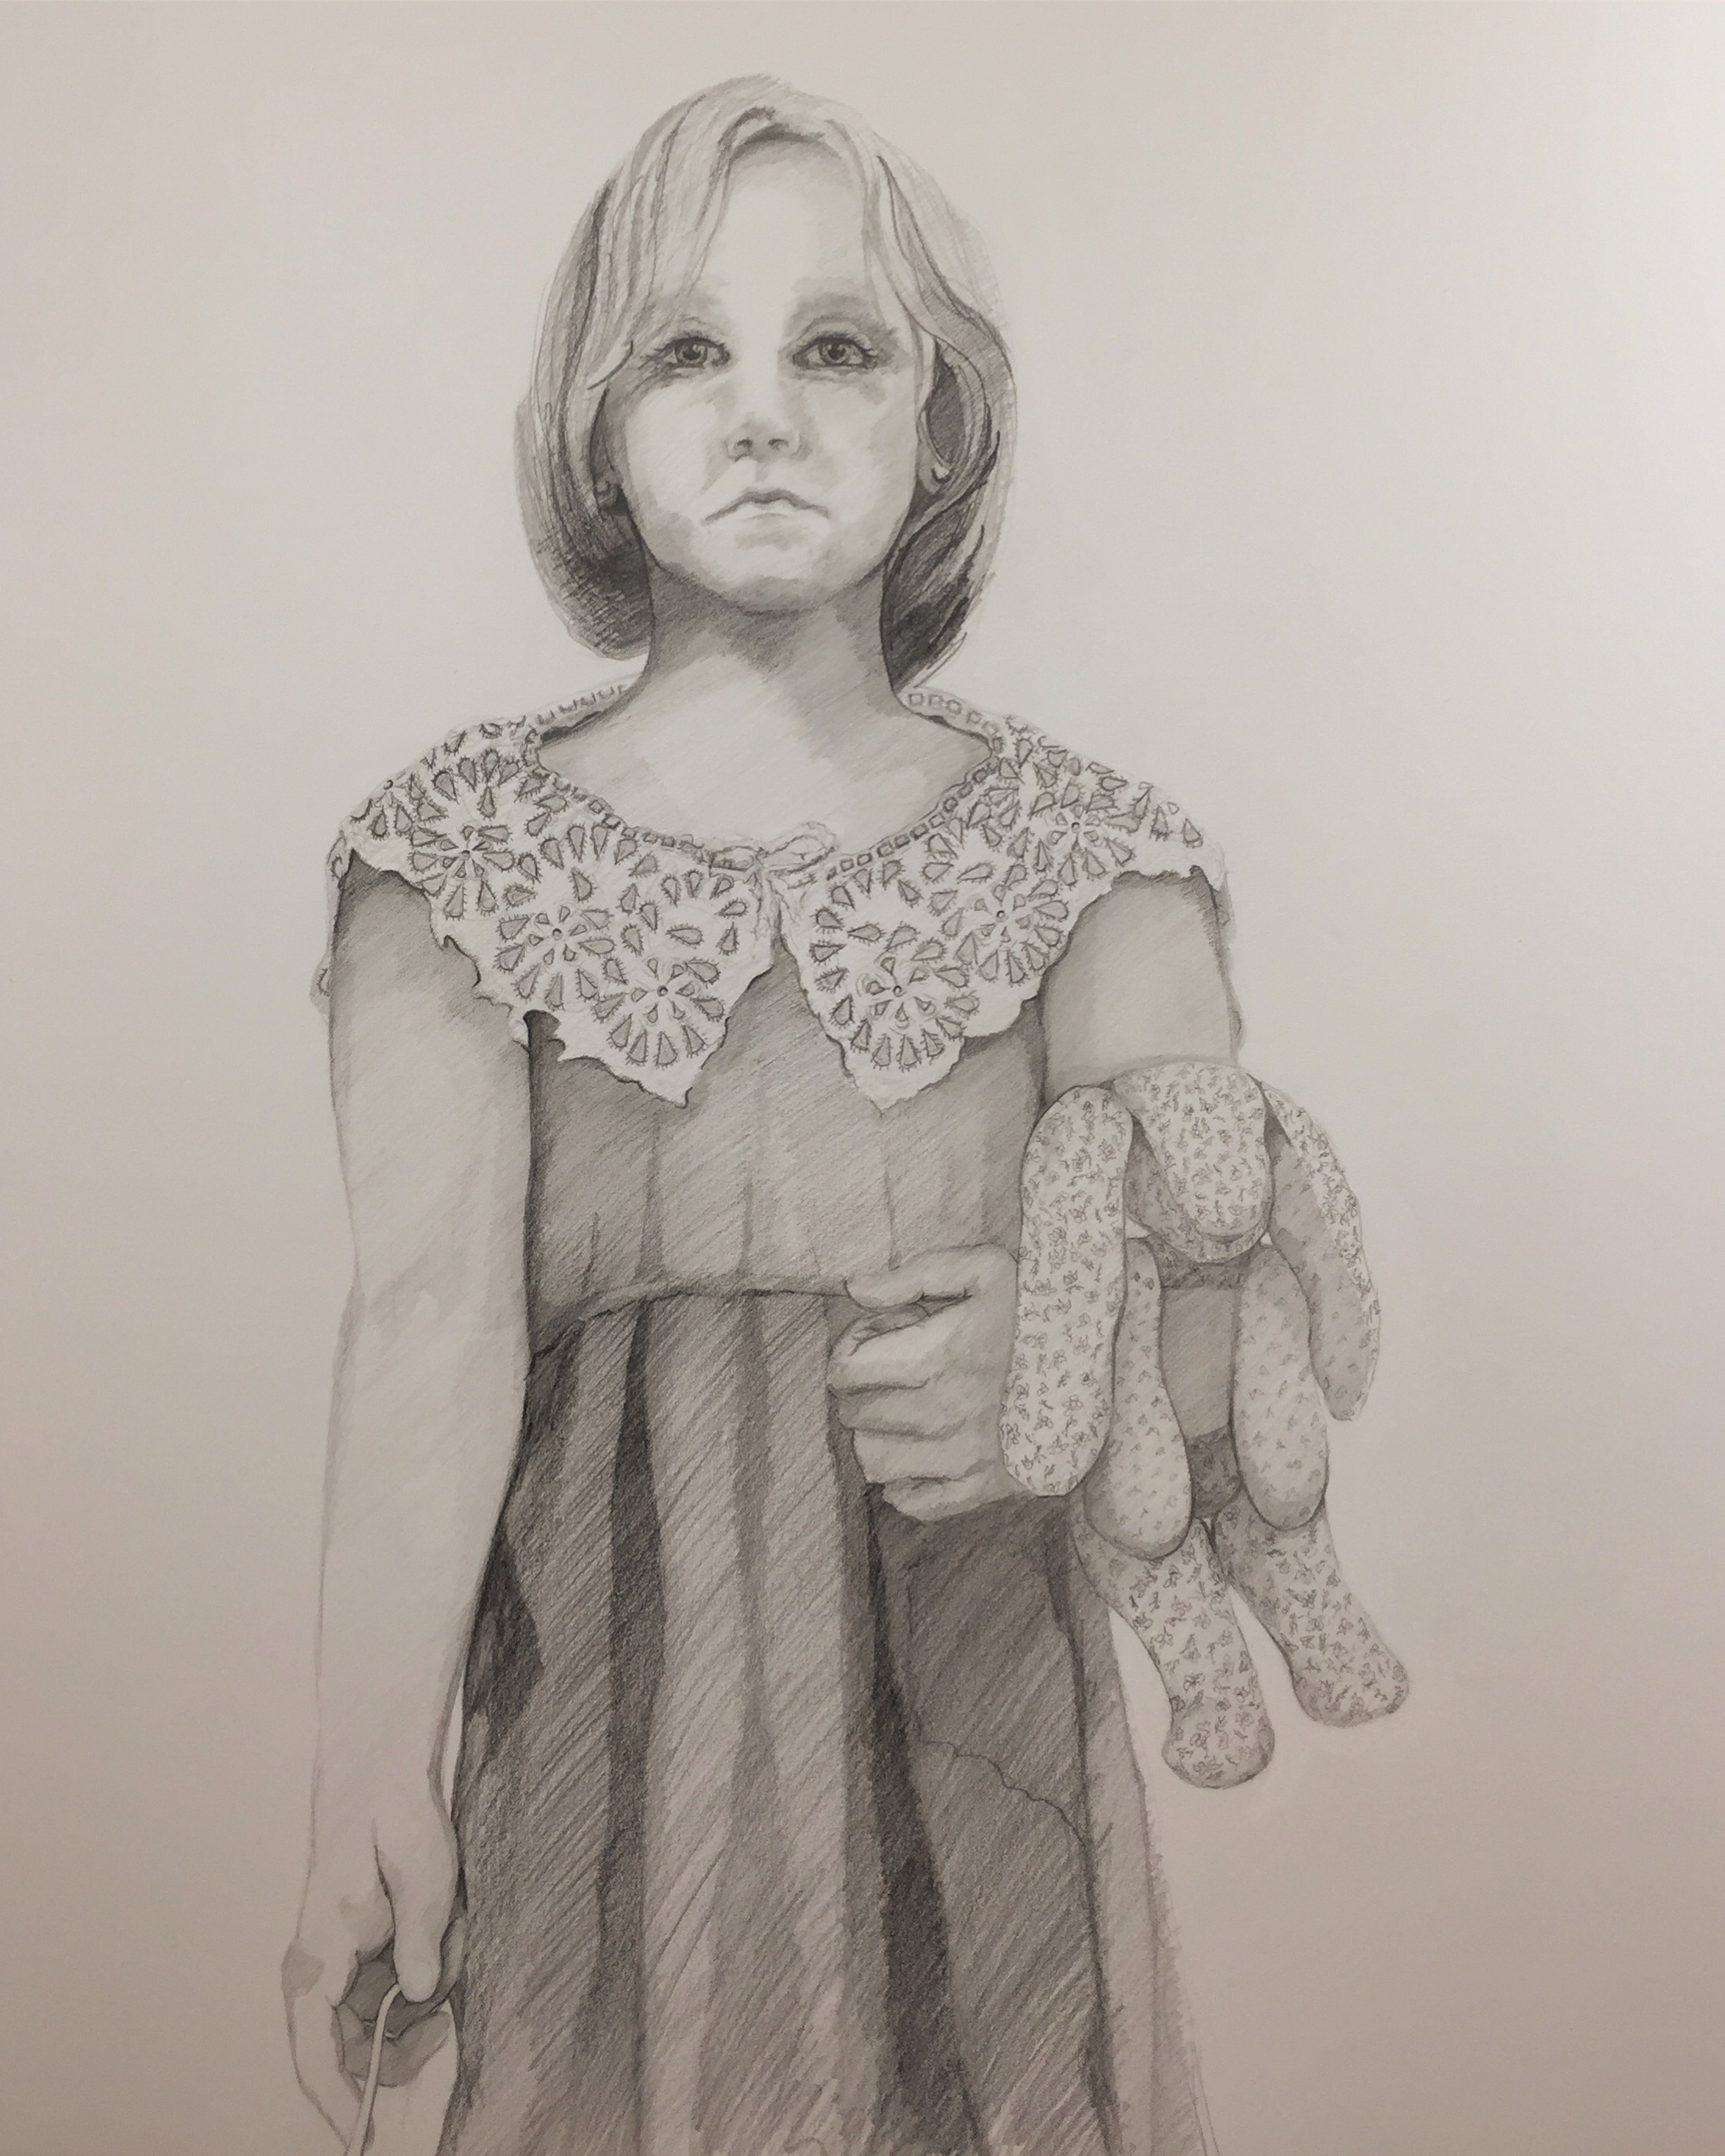 "Study for Vesper | Sarah West the Collision of Culture and Lack of Civility series 30x 40"" Graphite on Paper (2018)"